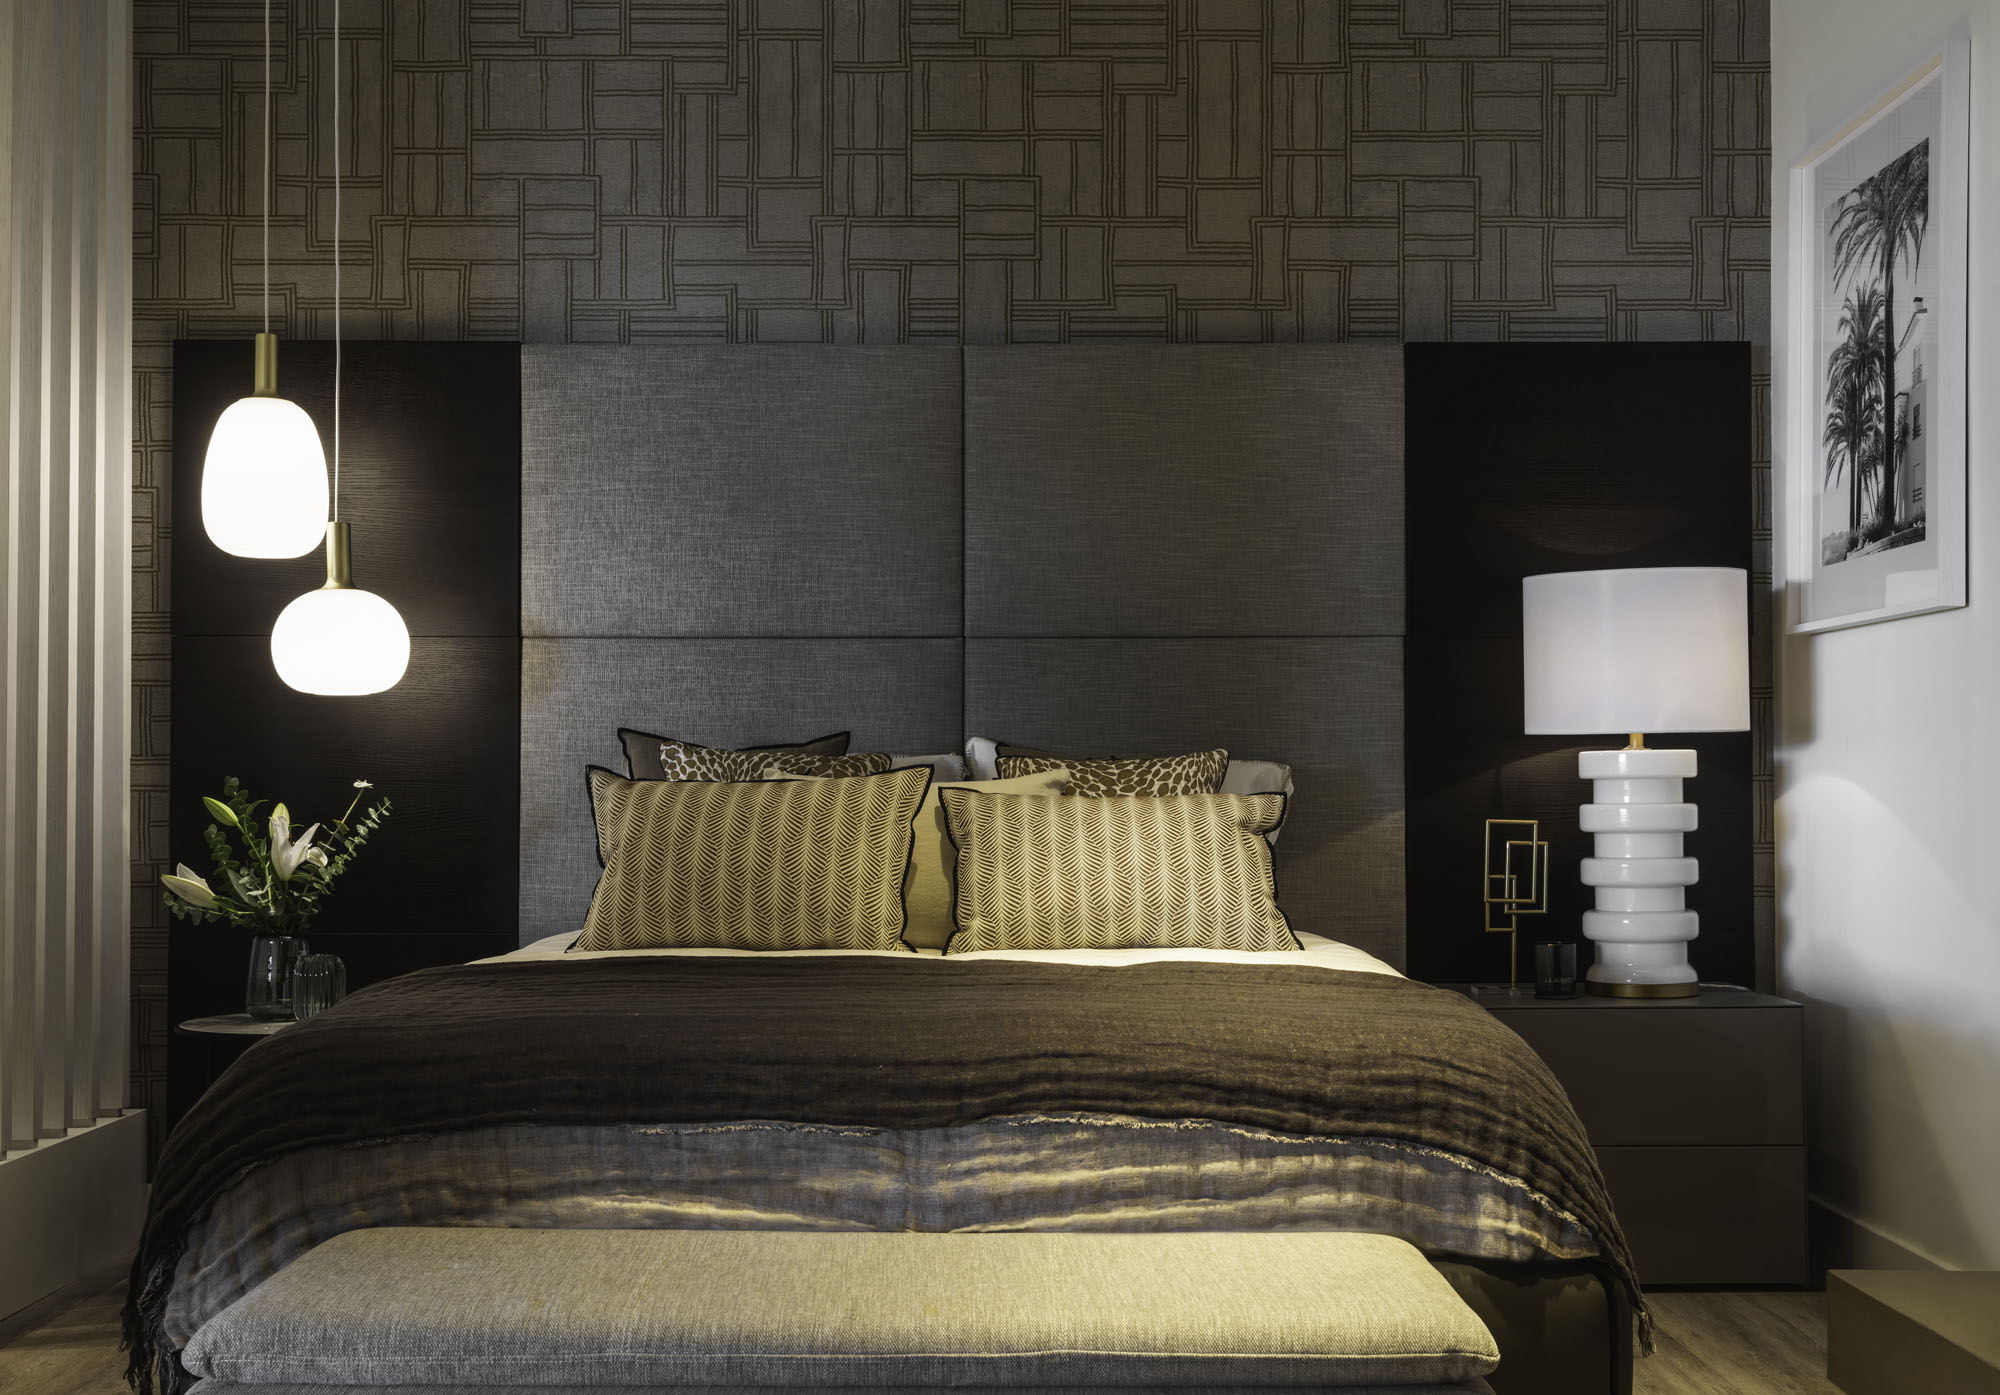 interior design showroom Malaga bedroom